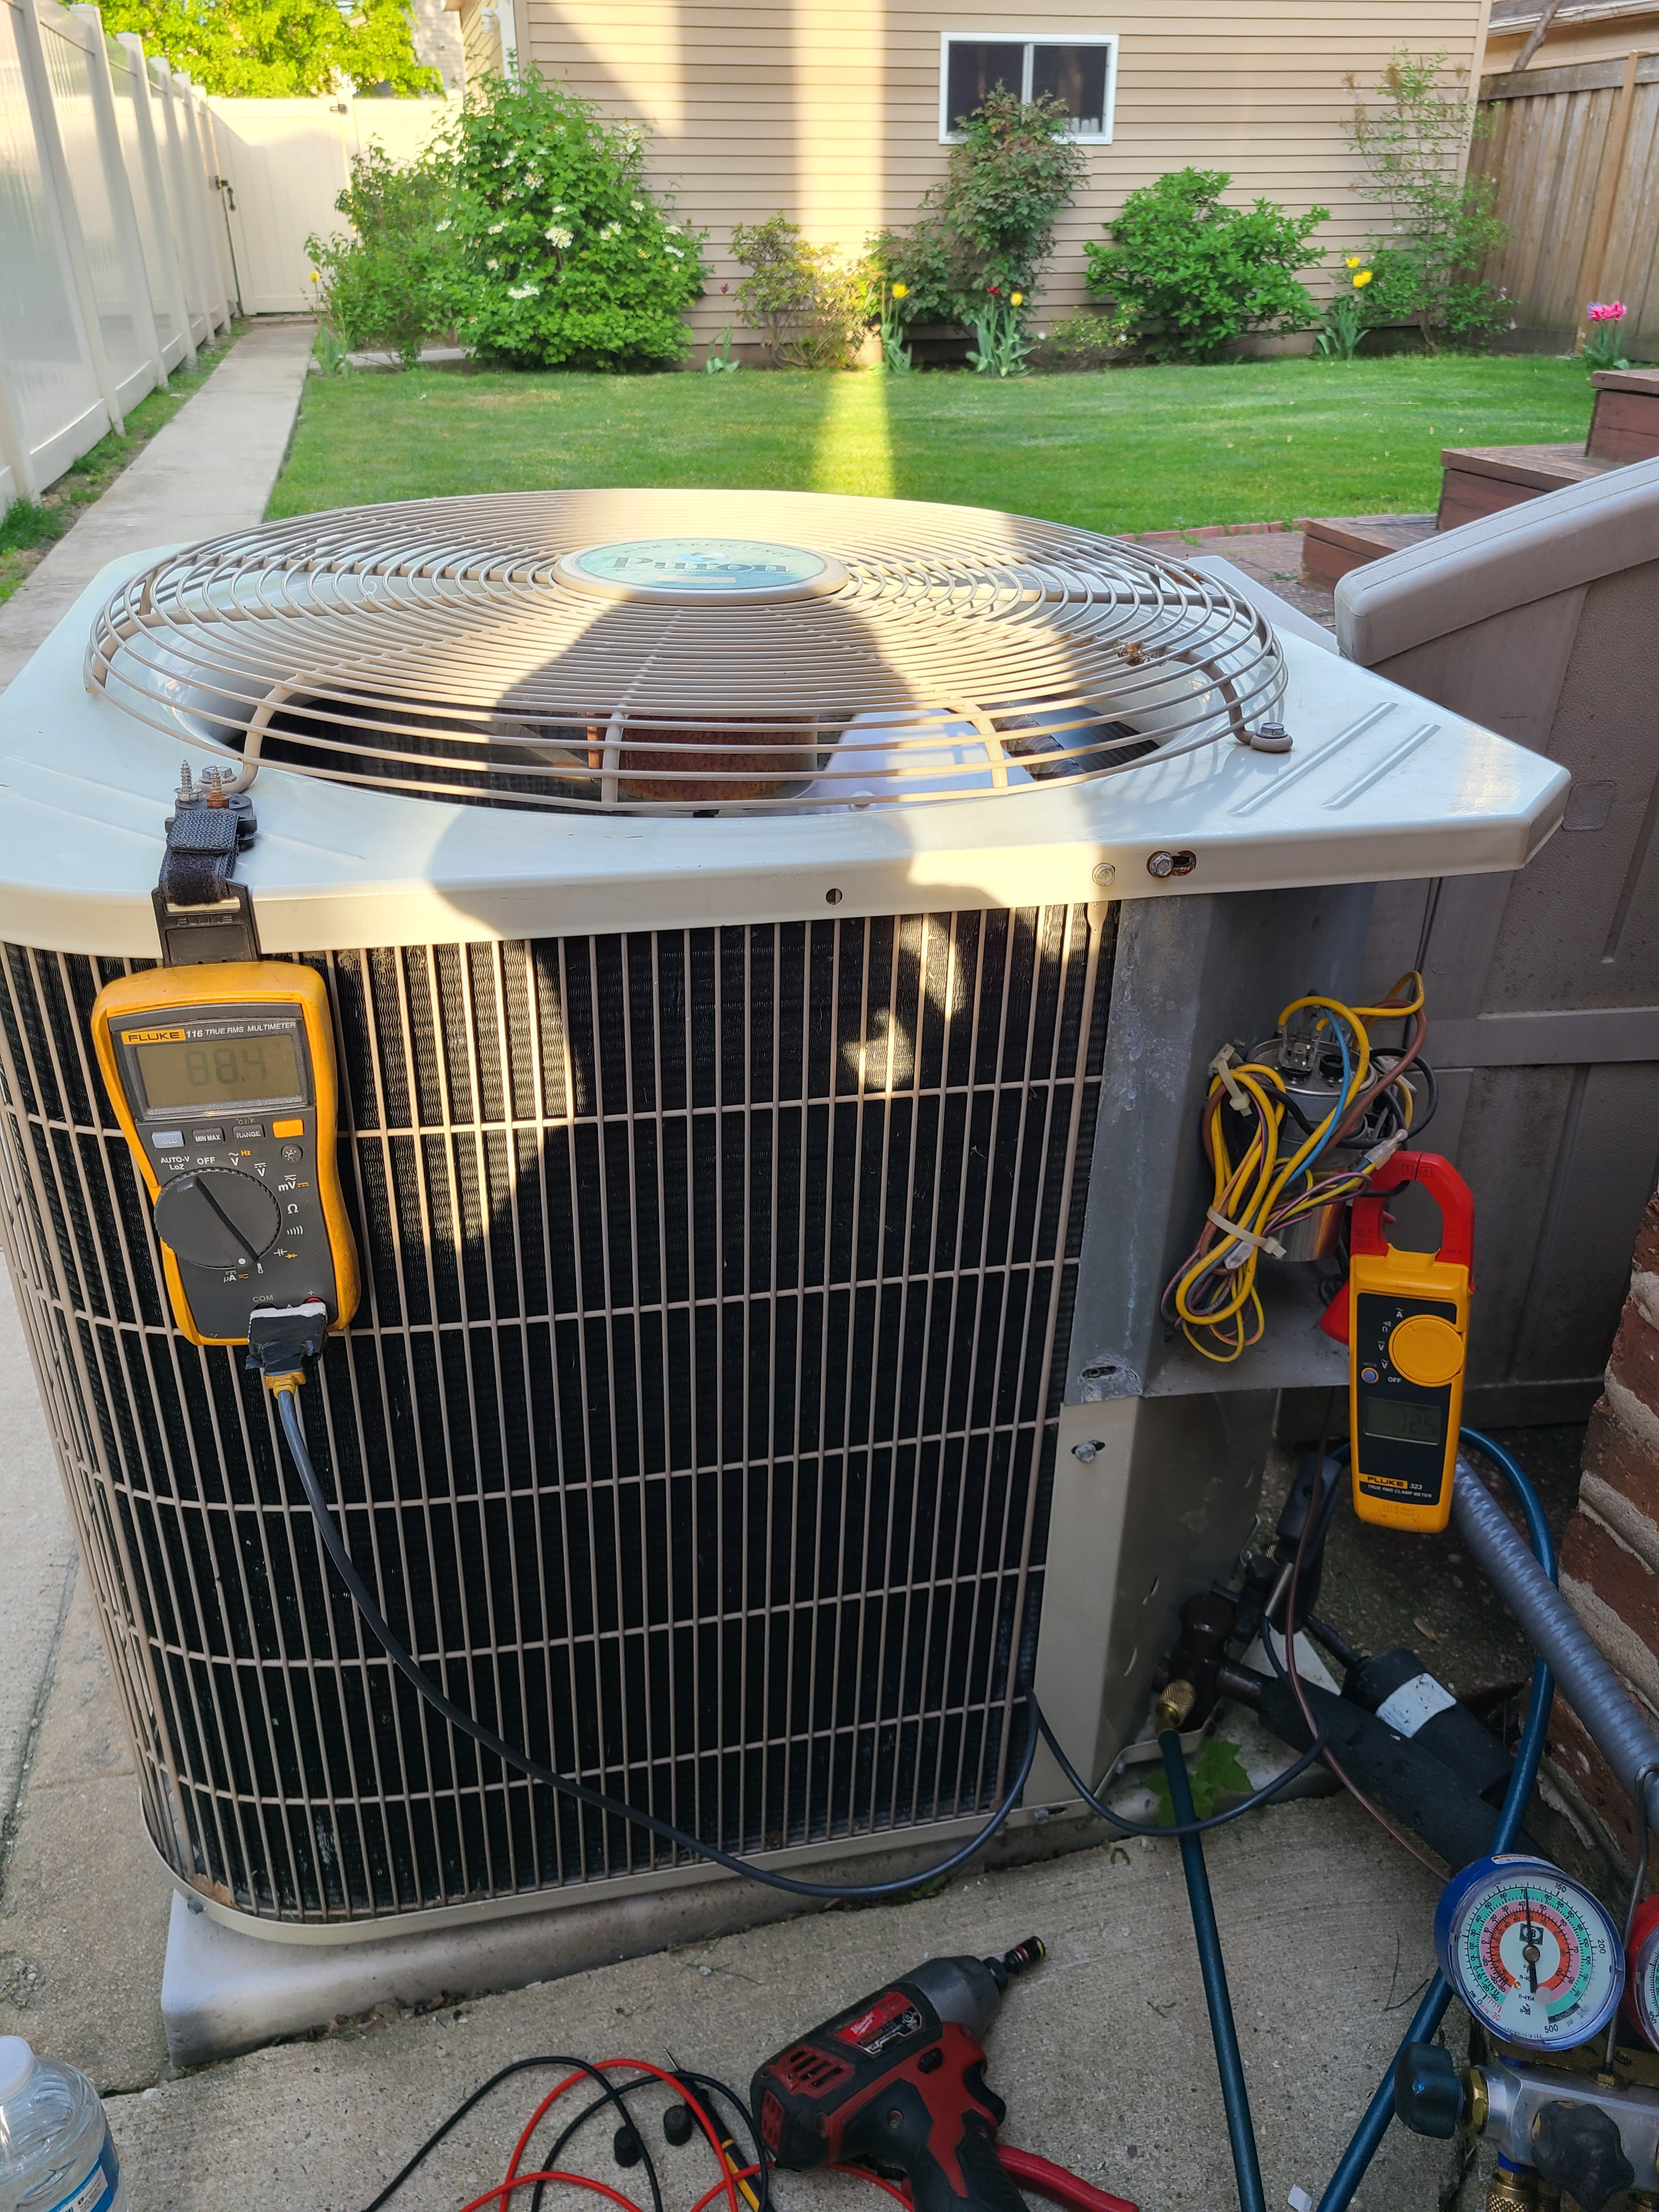 Bryant no cooling issues found and repair to restore operation.